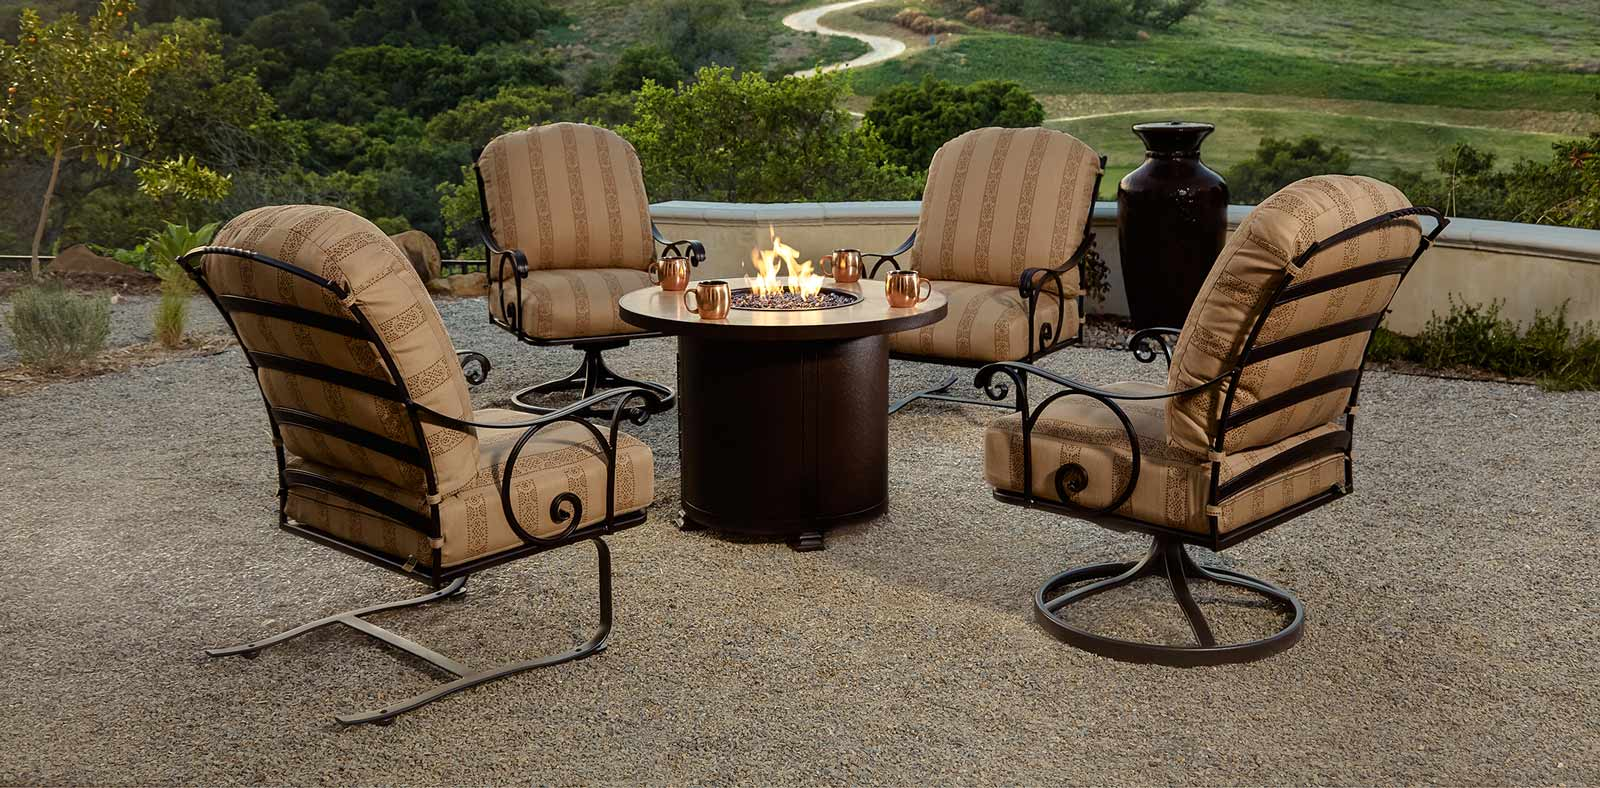 O.W. Lee Patio Furniture